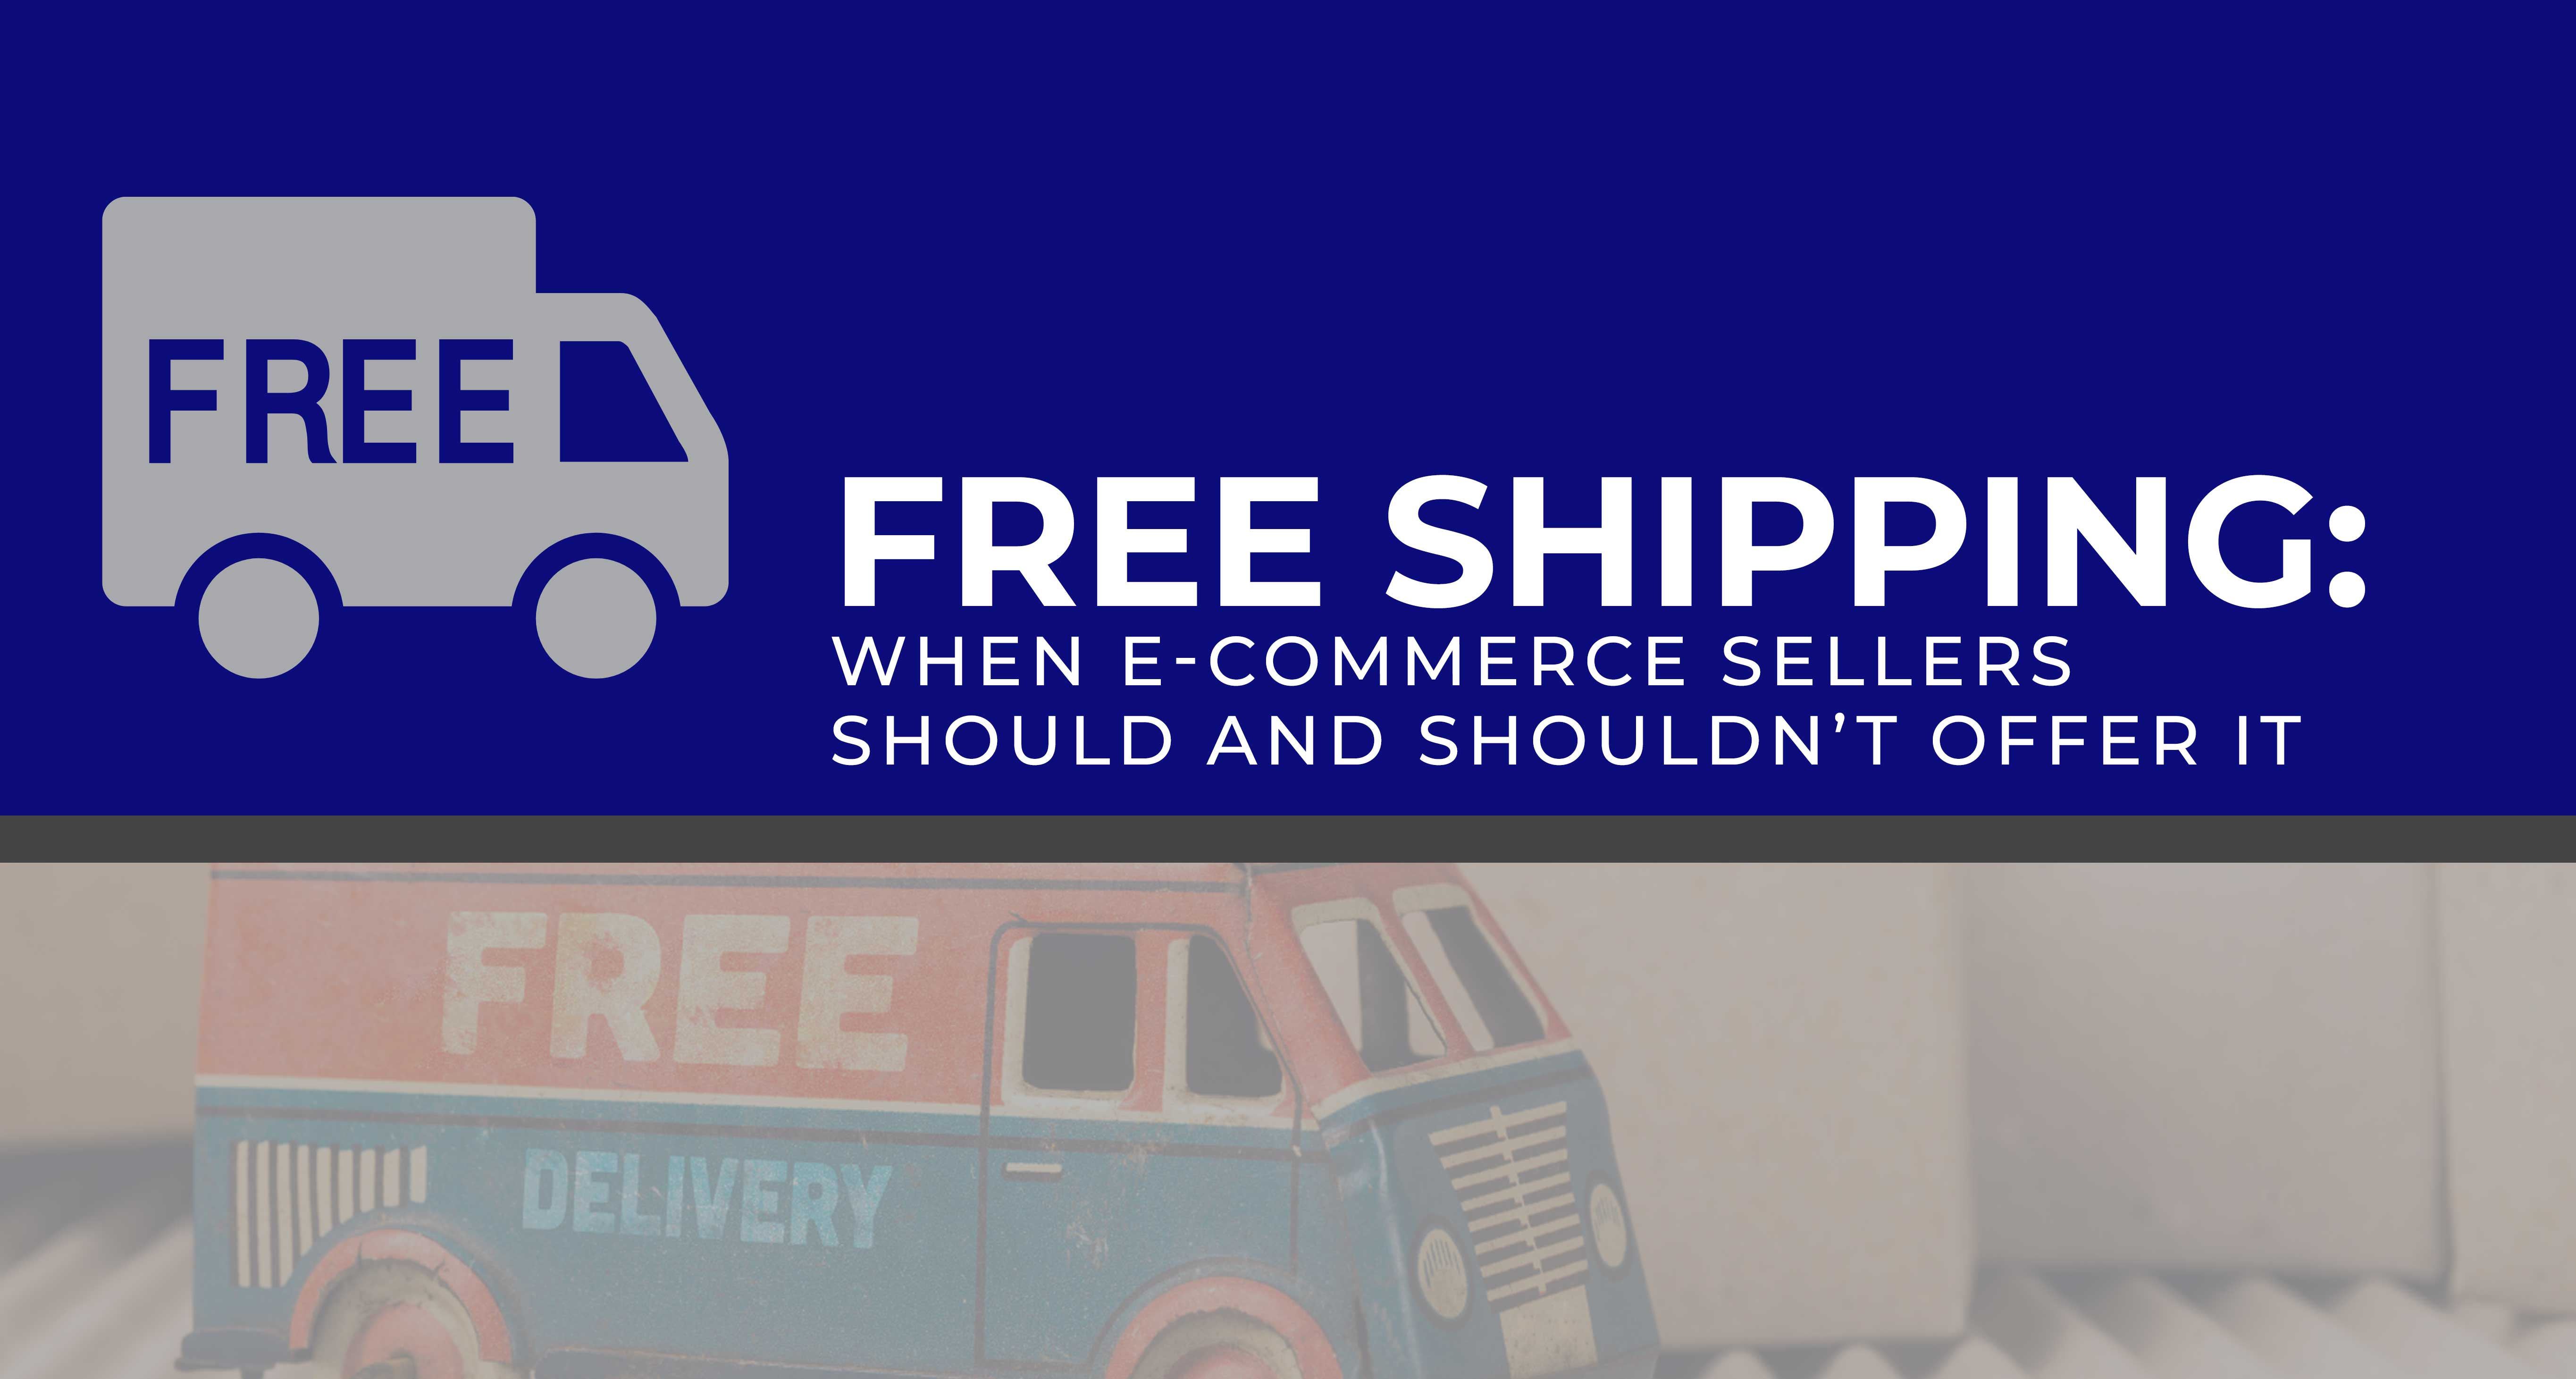 Free Shipping: When E-commerce Sellers Should and Shouldn't Offer It